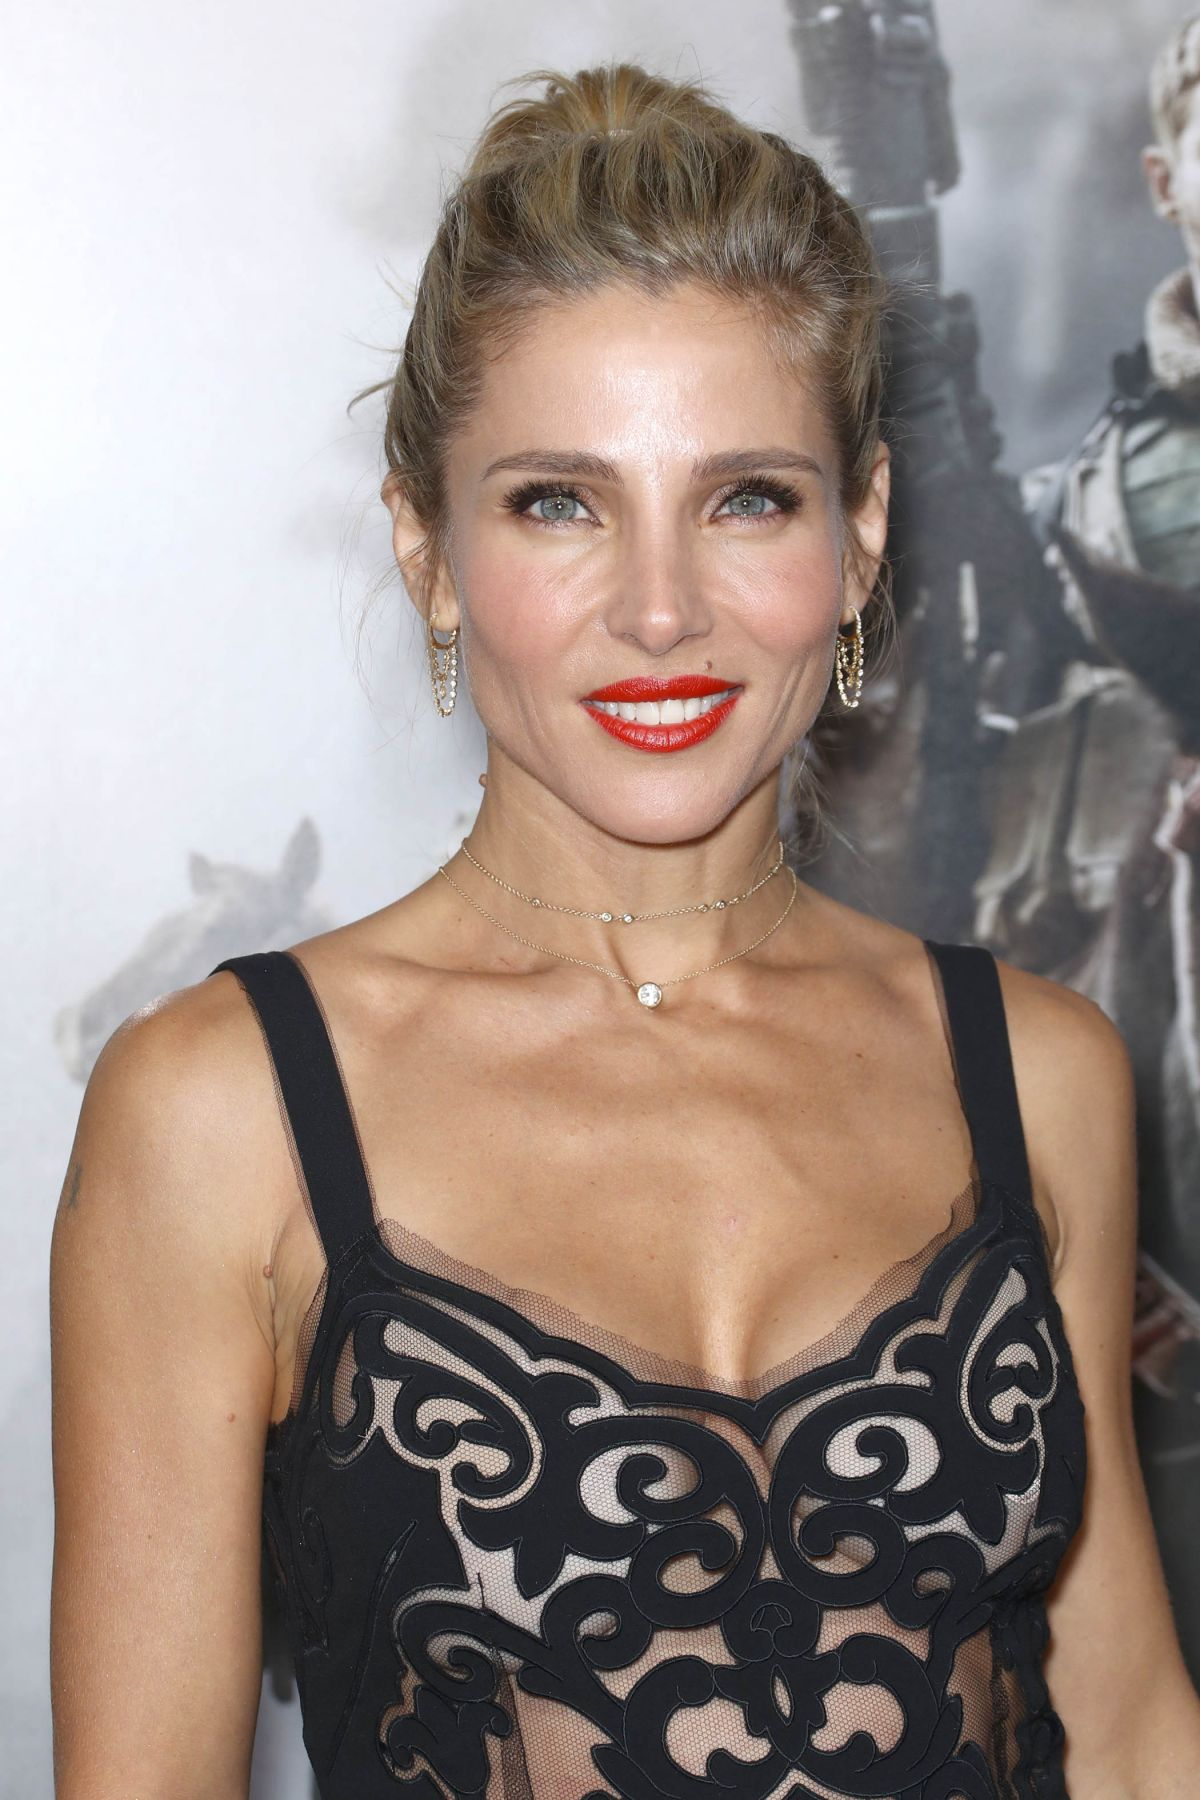 Elsa Bettwäsche 100x135 : elsa pataky at 12 strong premiere in new york 01 16 2018 ~ A.2002-acura-tl-radio.info Haus und Dekorationen